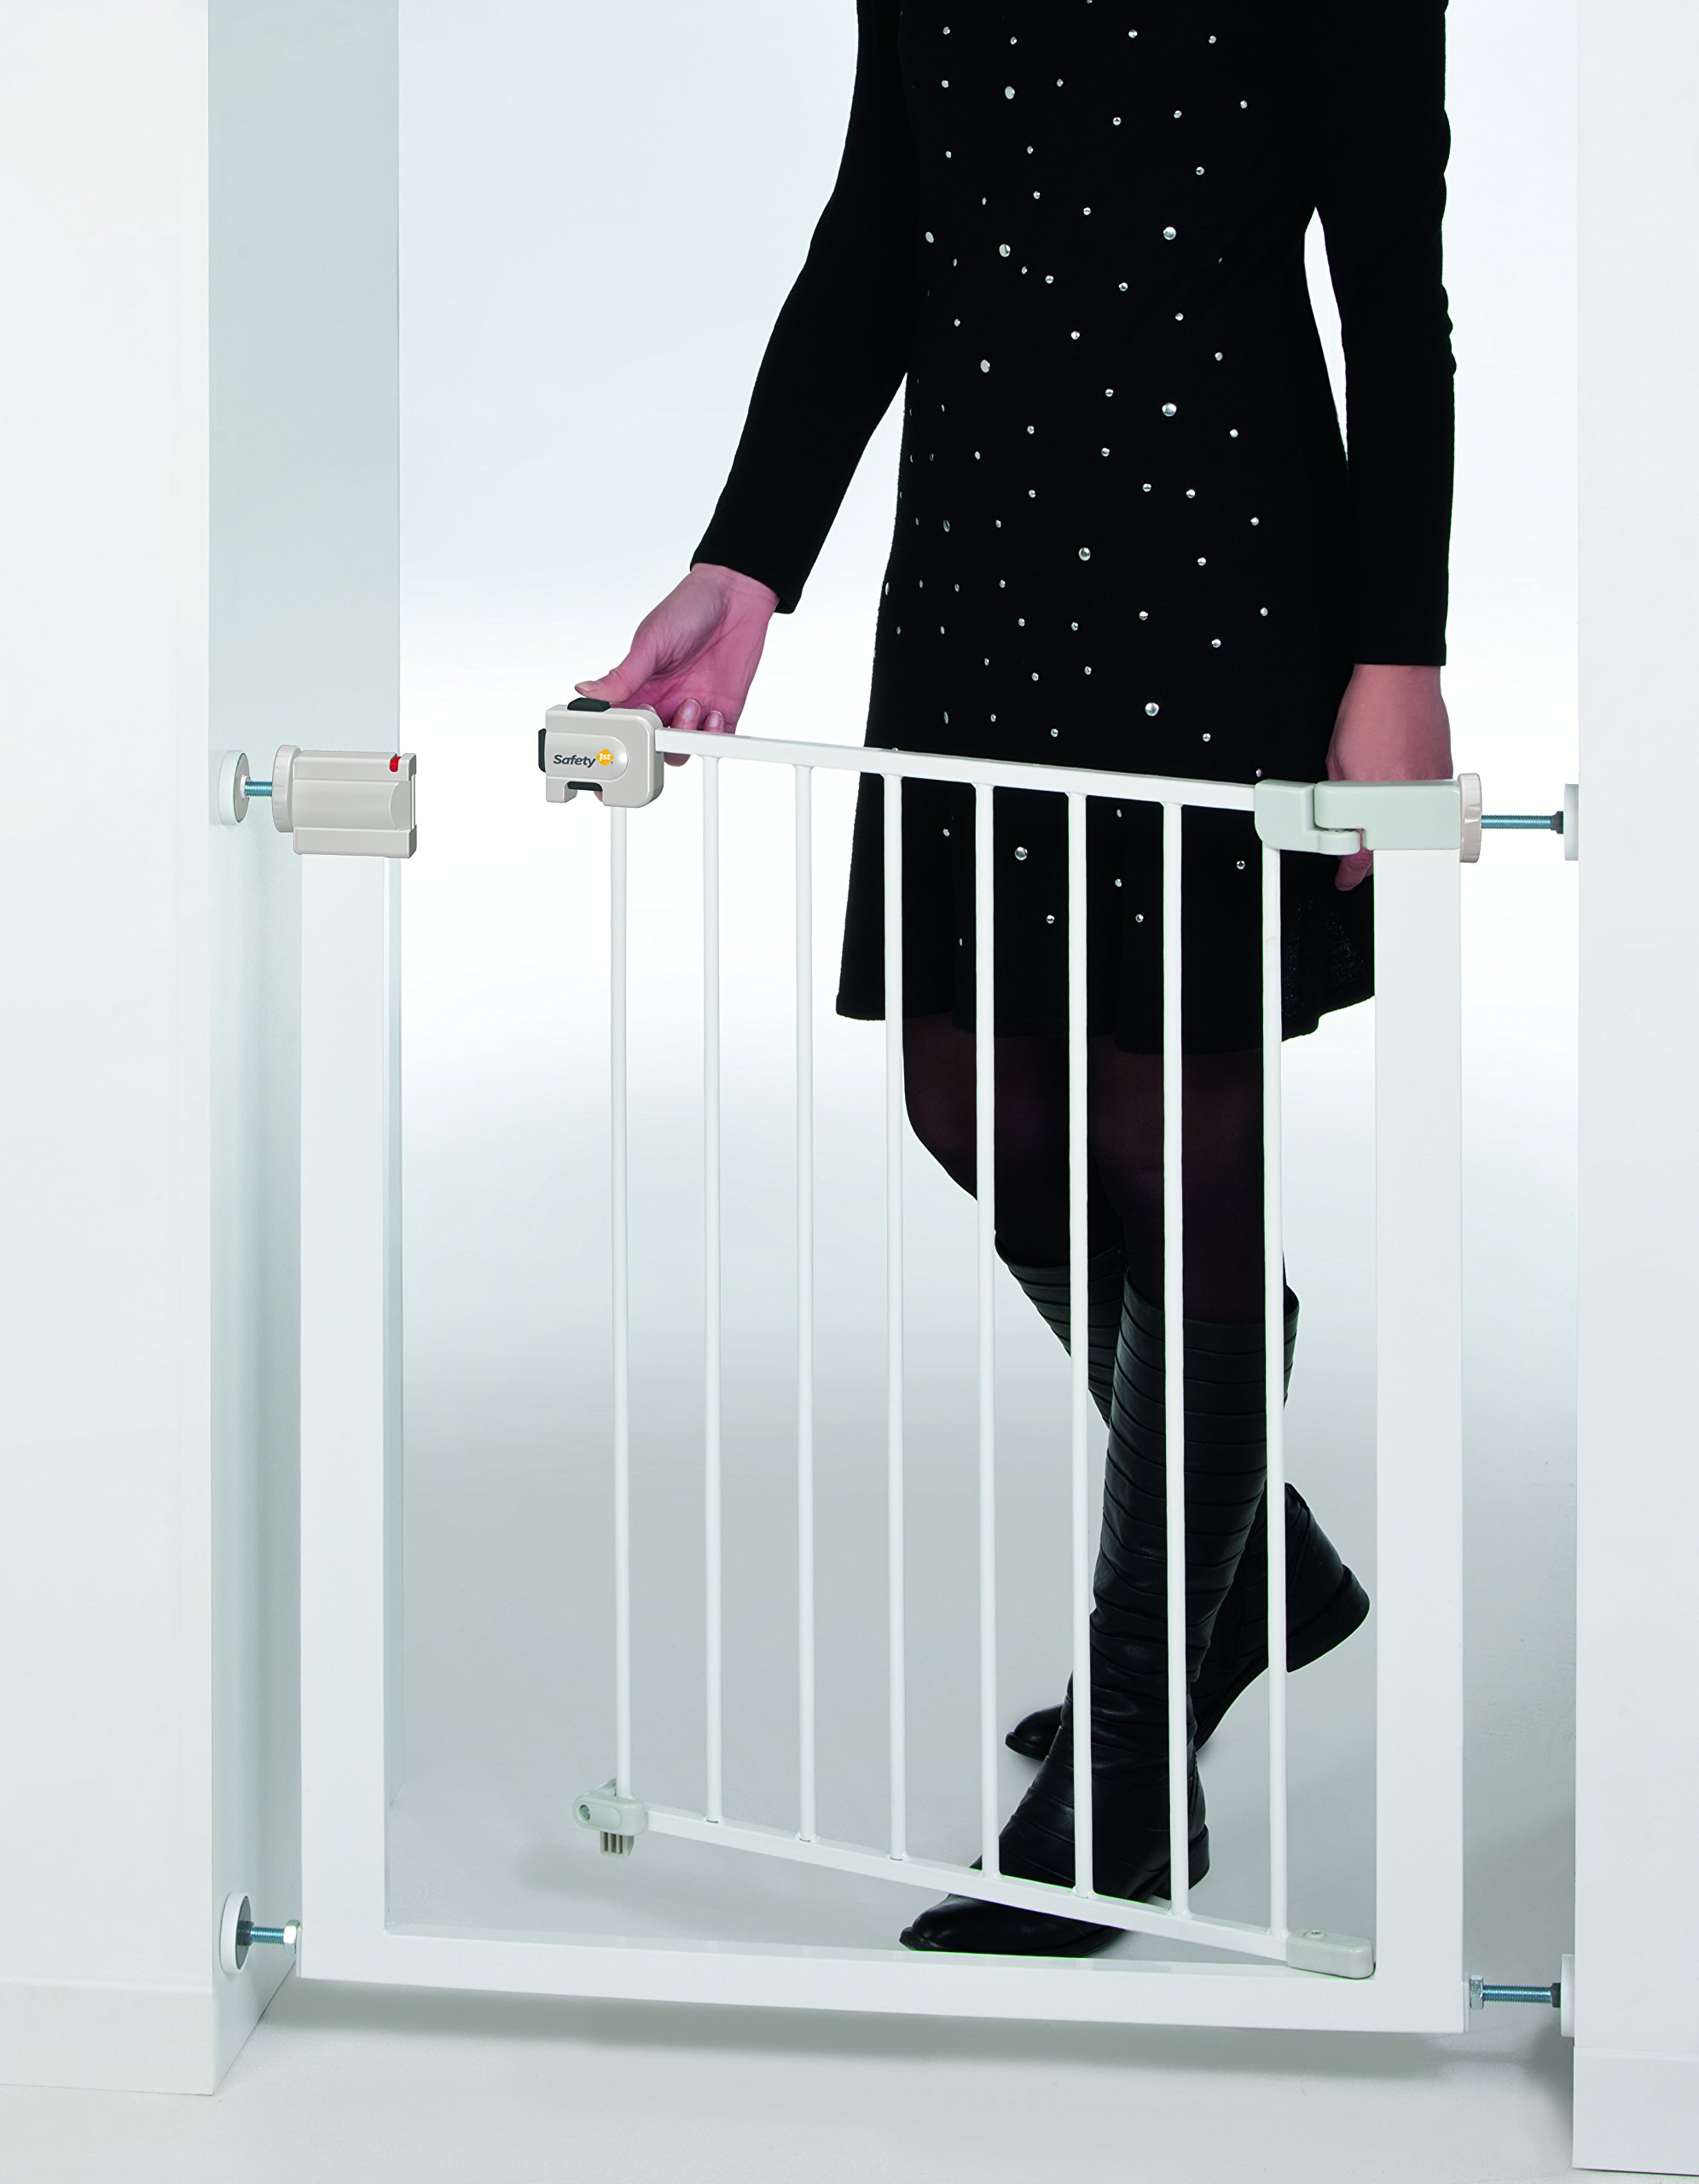 Safety 1st U-Pressure Barrier Metal-White Safety 1st U-pressure barrier metal is barrier gate with stair gate Fixing by 4 points pressure makes no holes in the walls Quick installation cups provided to avoid damaging the walls 5